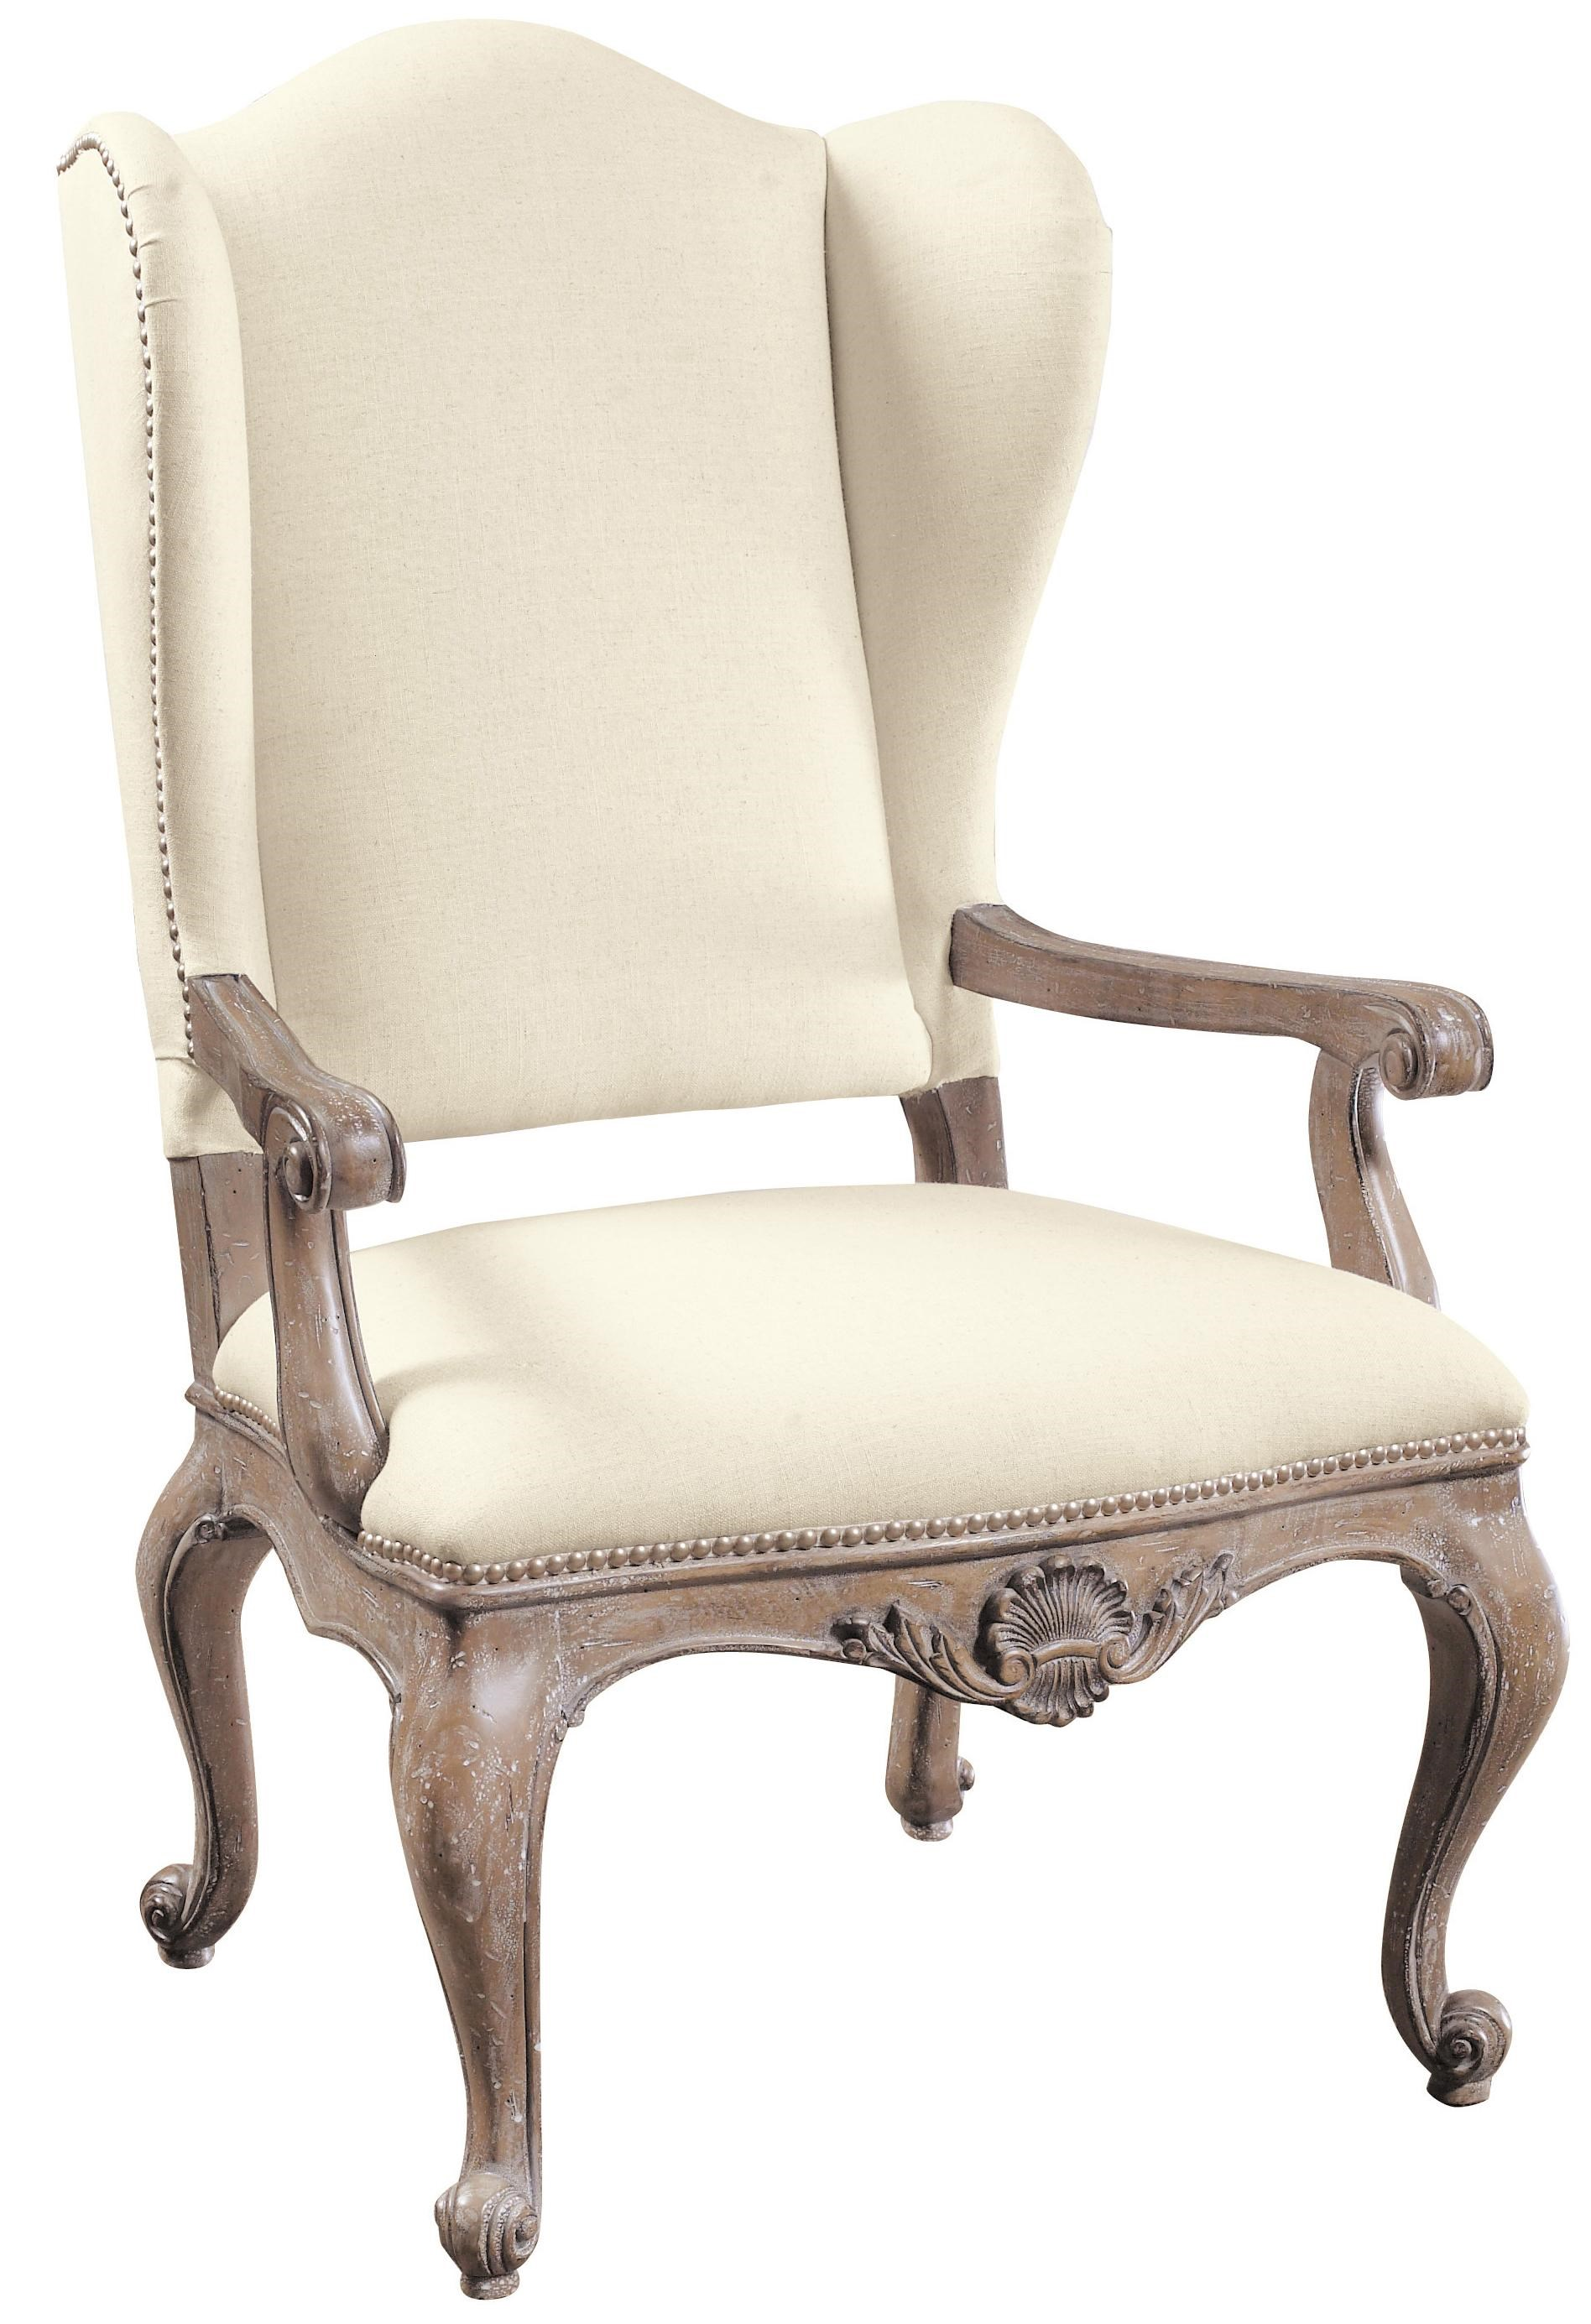 Pulaski Furniture Accentrics Home Danae Arm Chair With Cream Linen  Upholstery